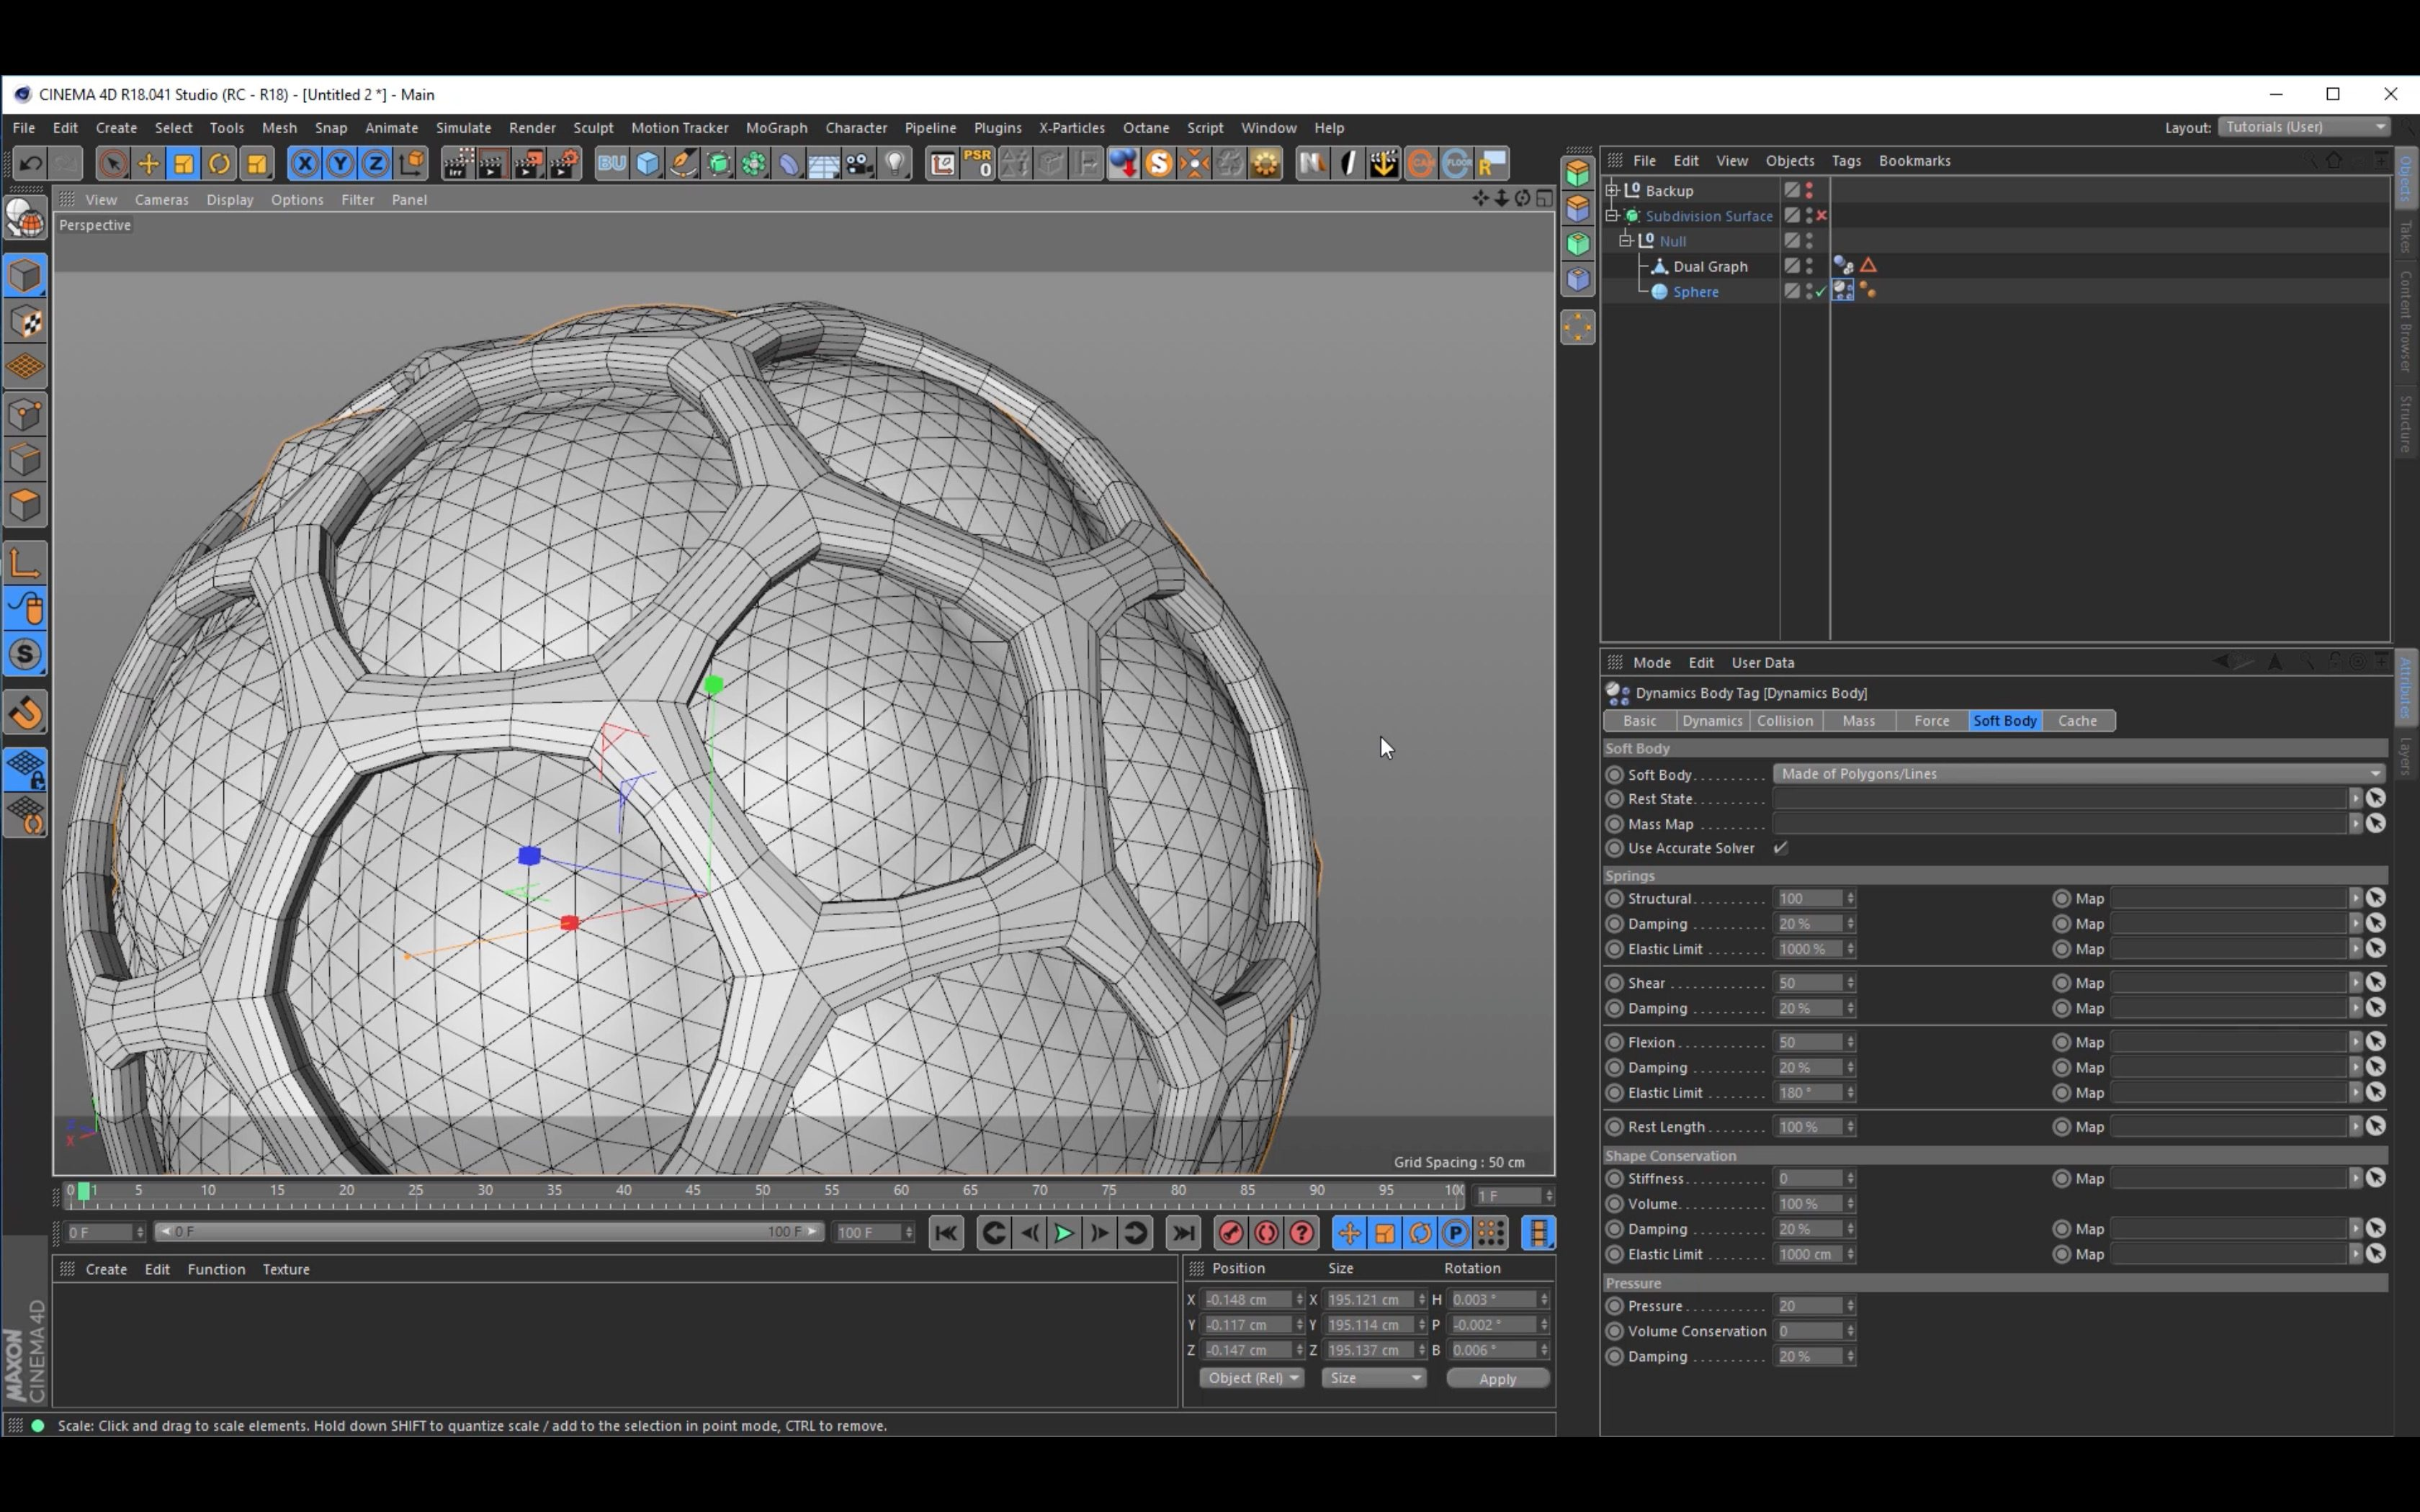 Tutorial: Creating a BubbleSphere in Cinema 4D